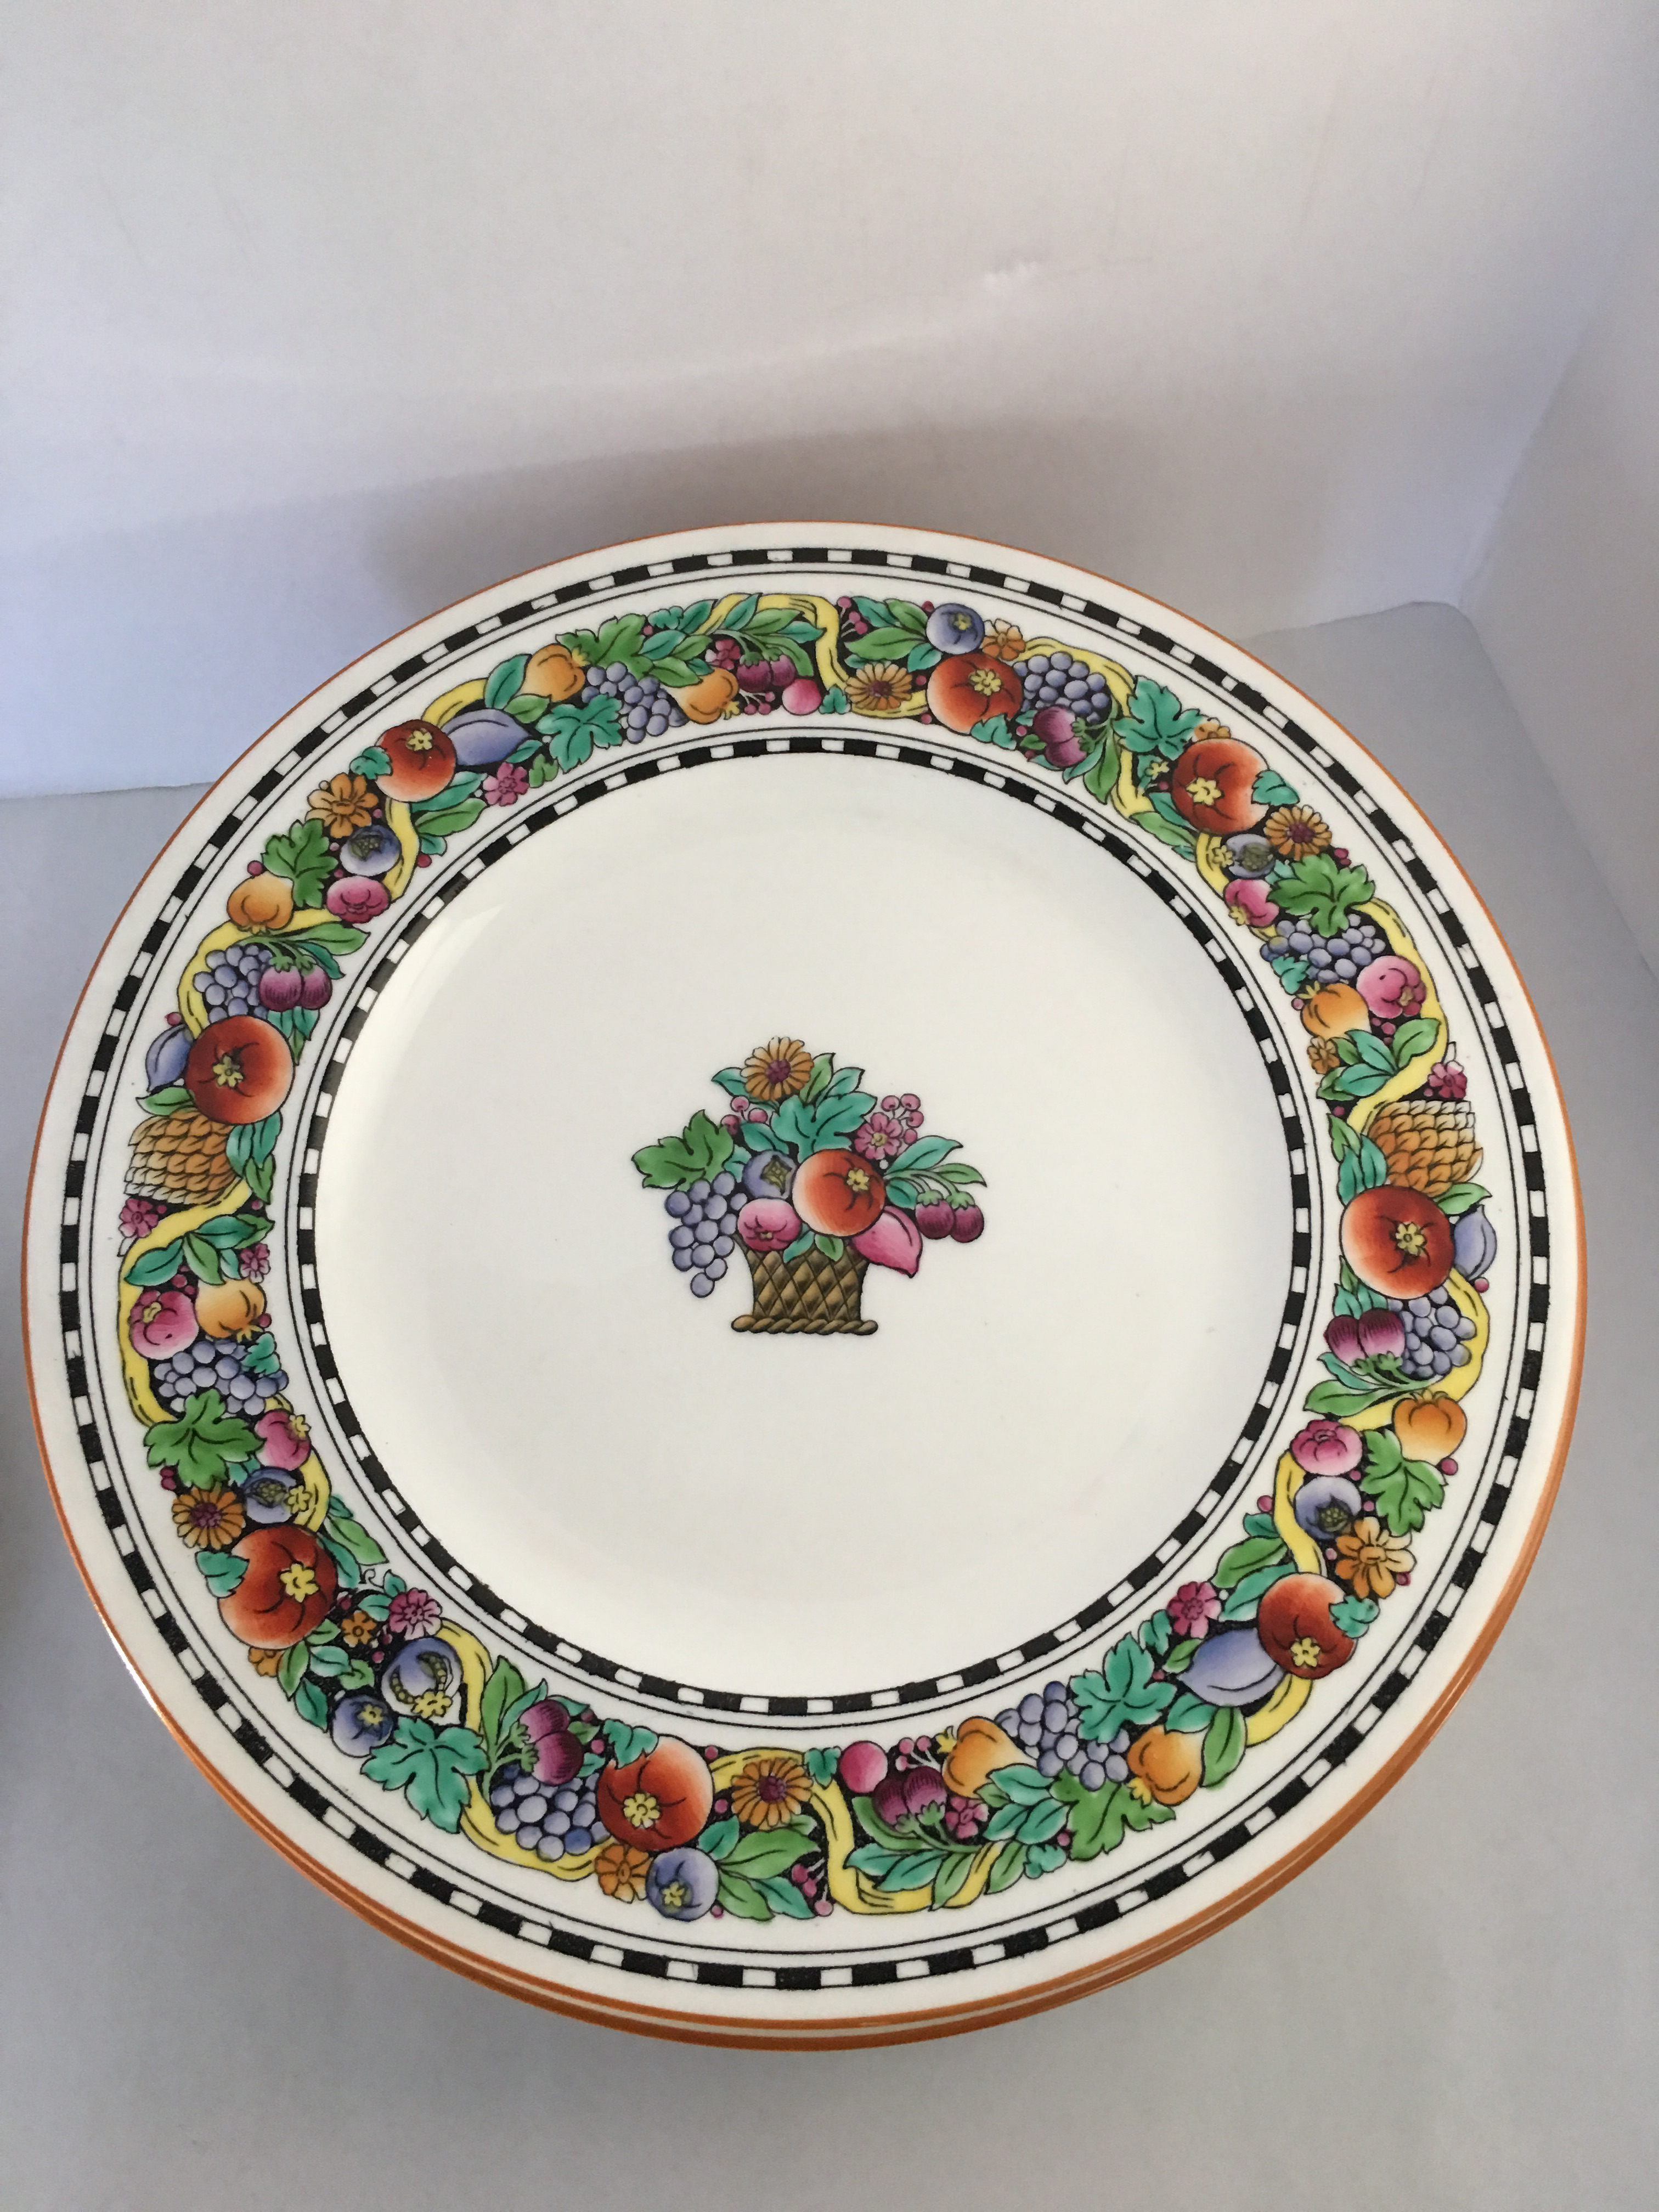 Wedgewood Dinner Plates - Set of 12 - Image 7 of 10  sc 1 st  Chairish & Wedgewood Dinner Plates - Set of 12 | Chairish